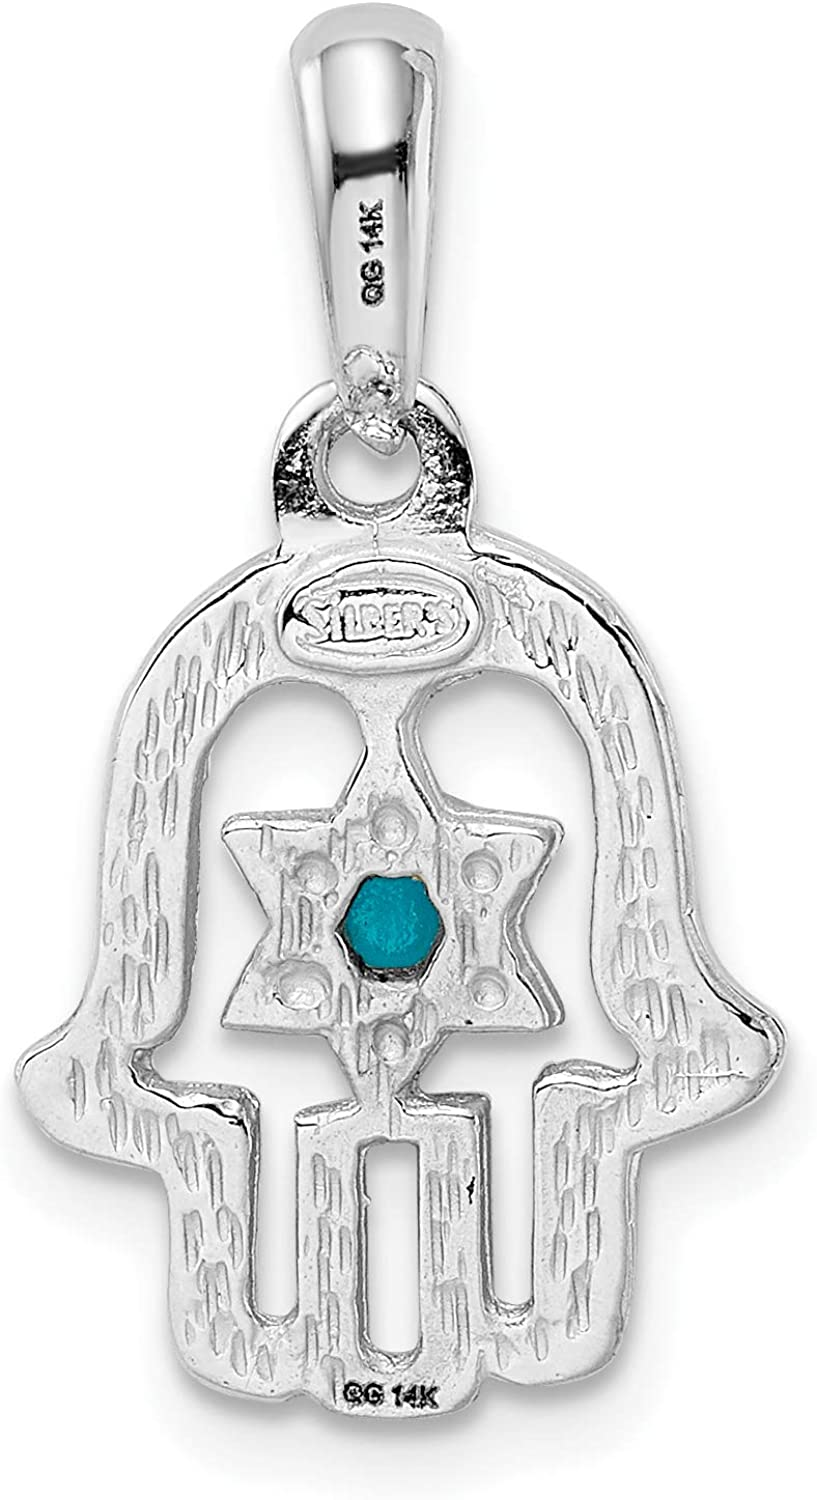 14k Solid Polished White Gold Chamseh Pendant With Turquoise Stone 25x13mm